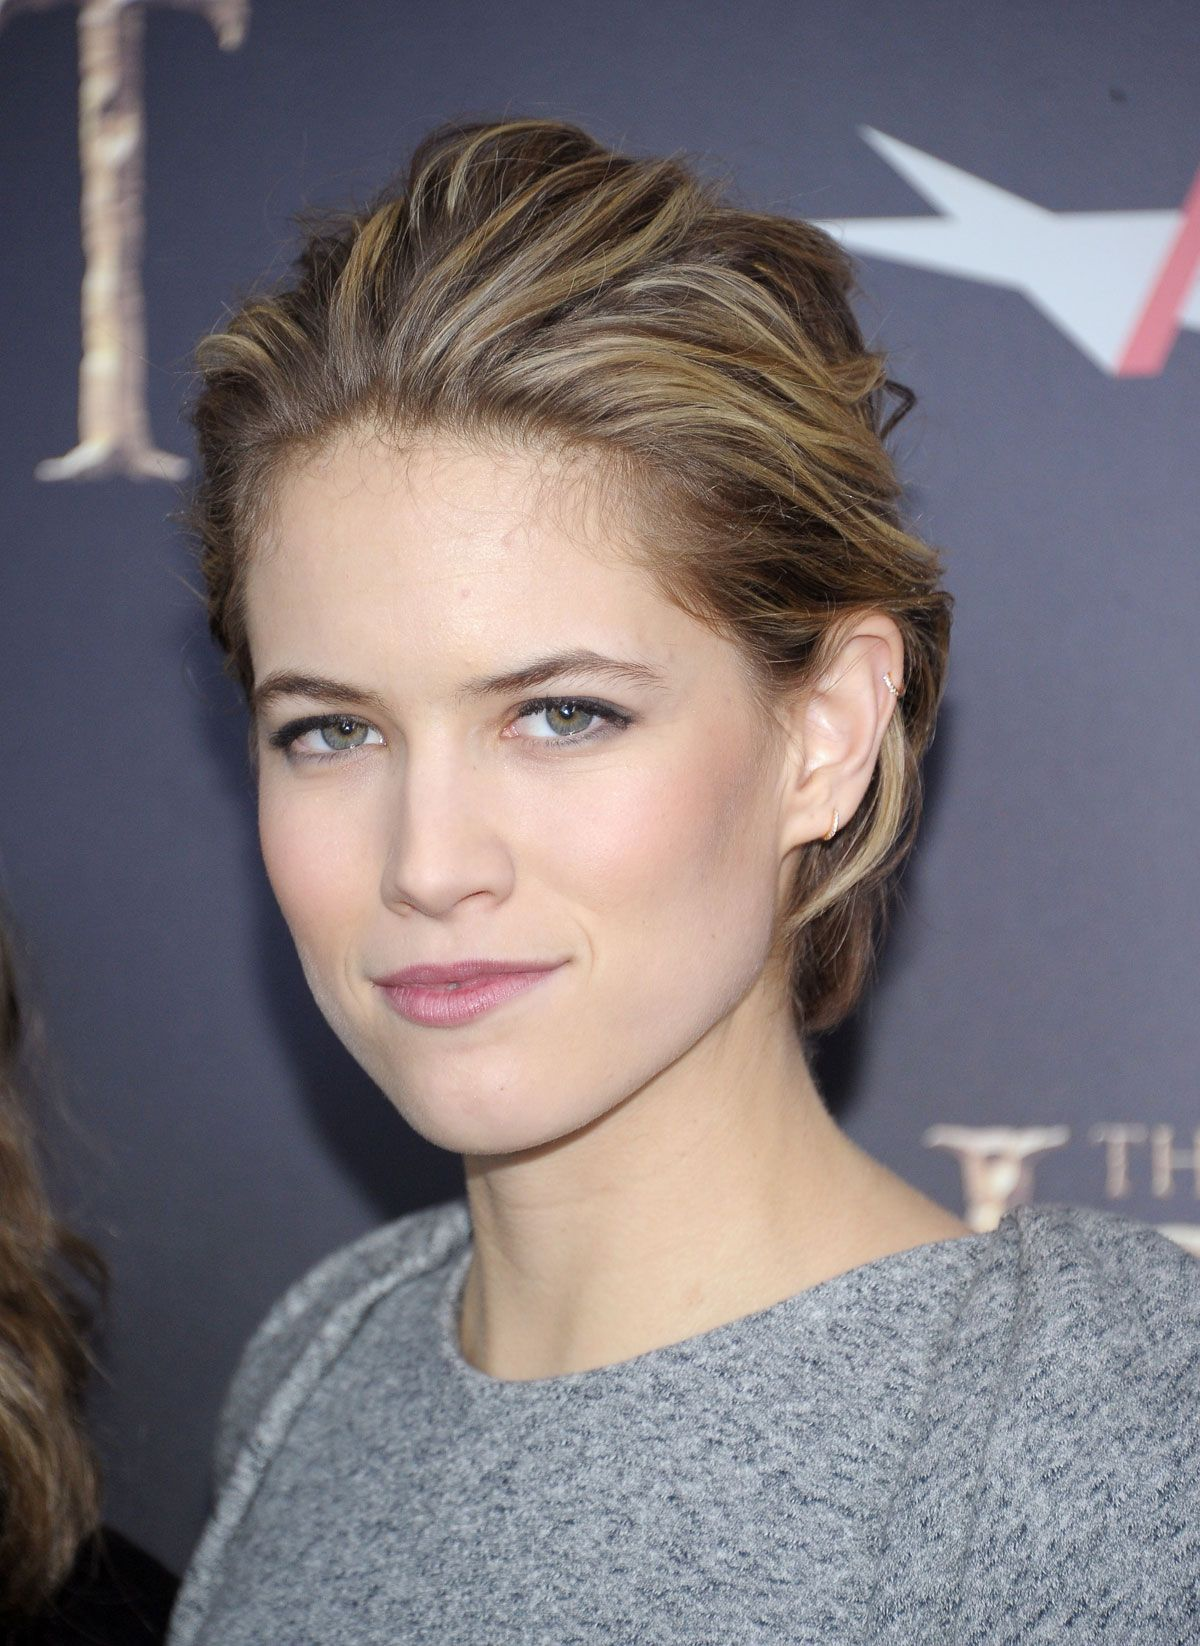 cody horn rescue me